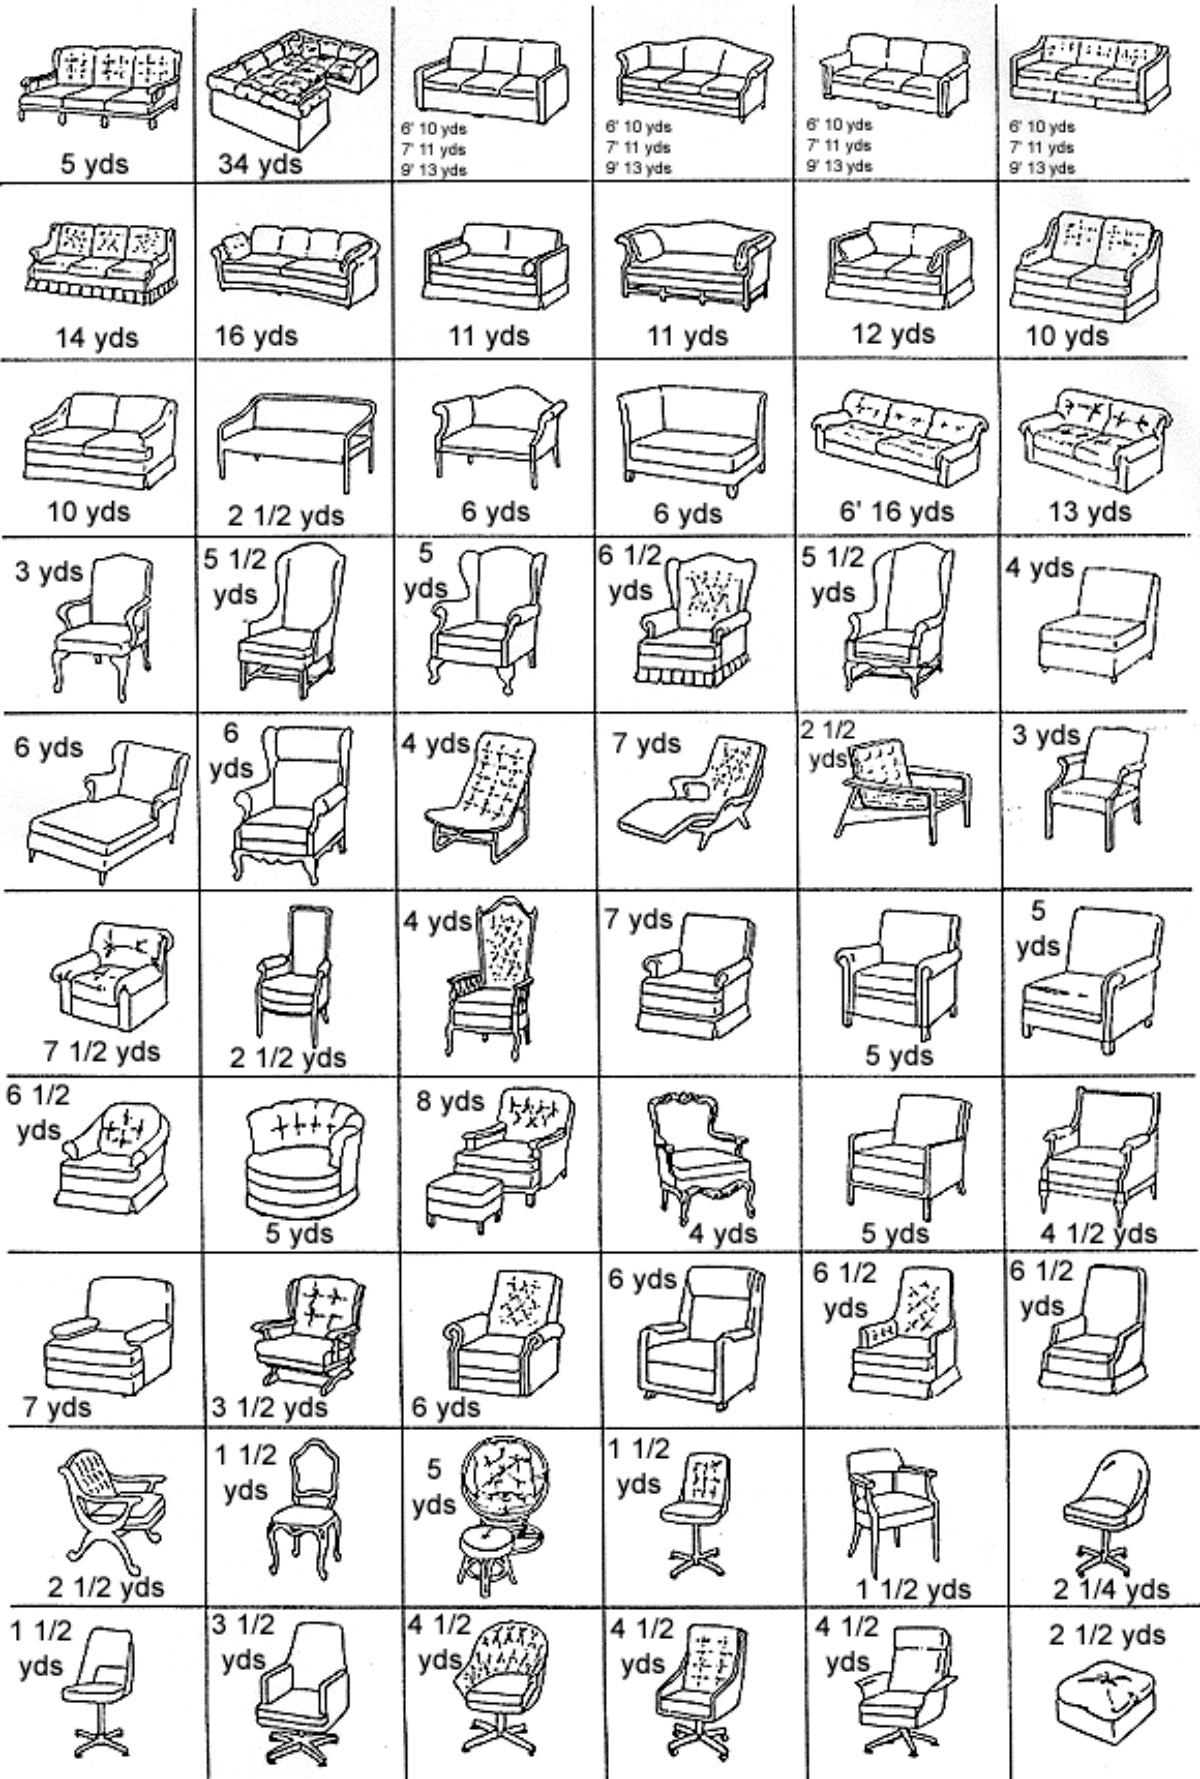 fabric estimator chart